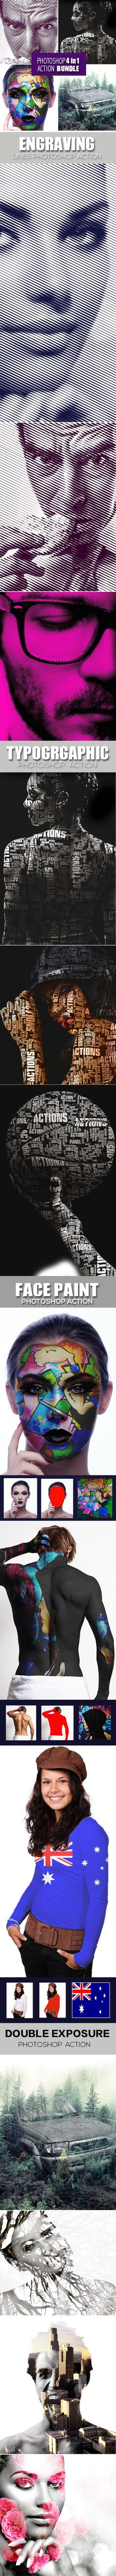 Photoshop 4 in 1 Actions Bundle